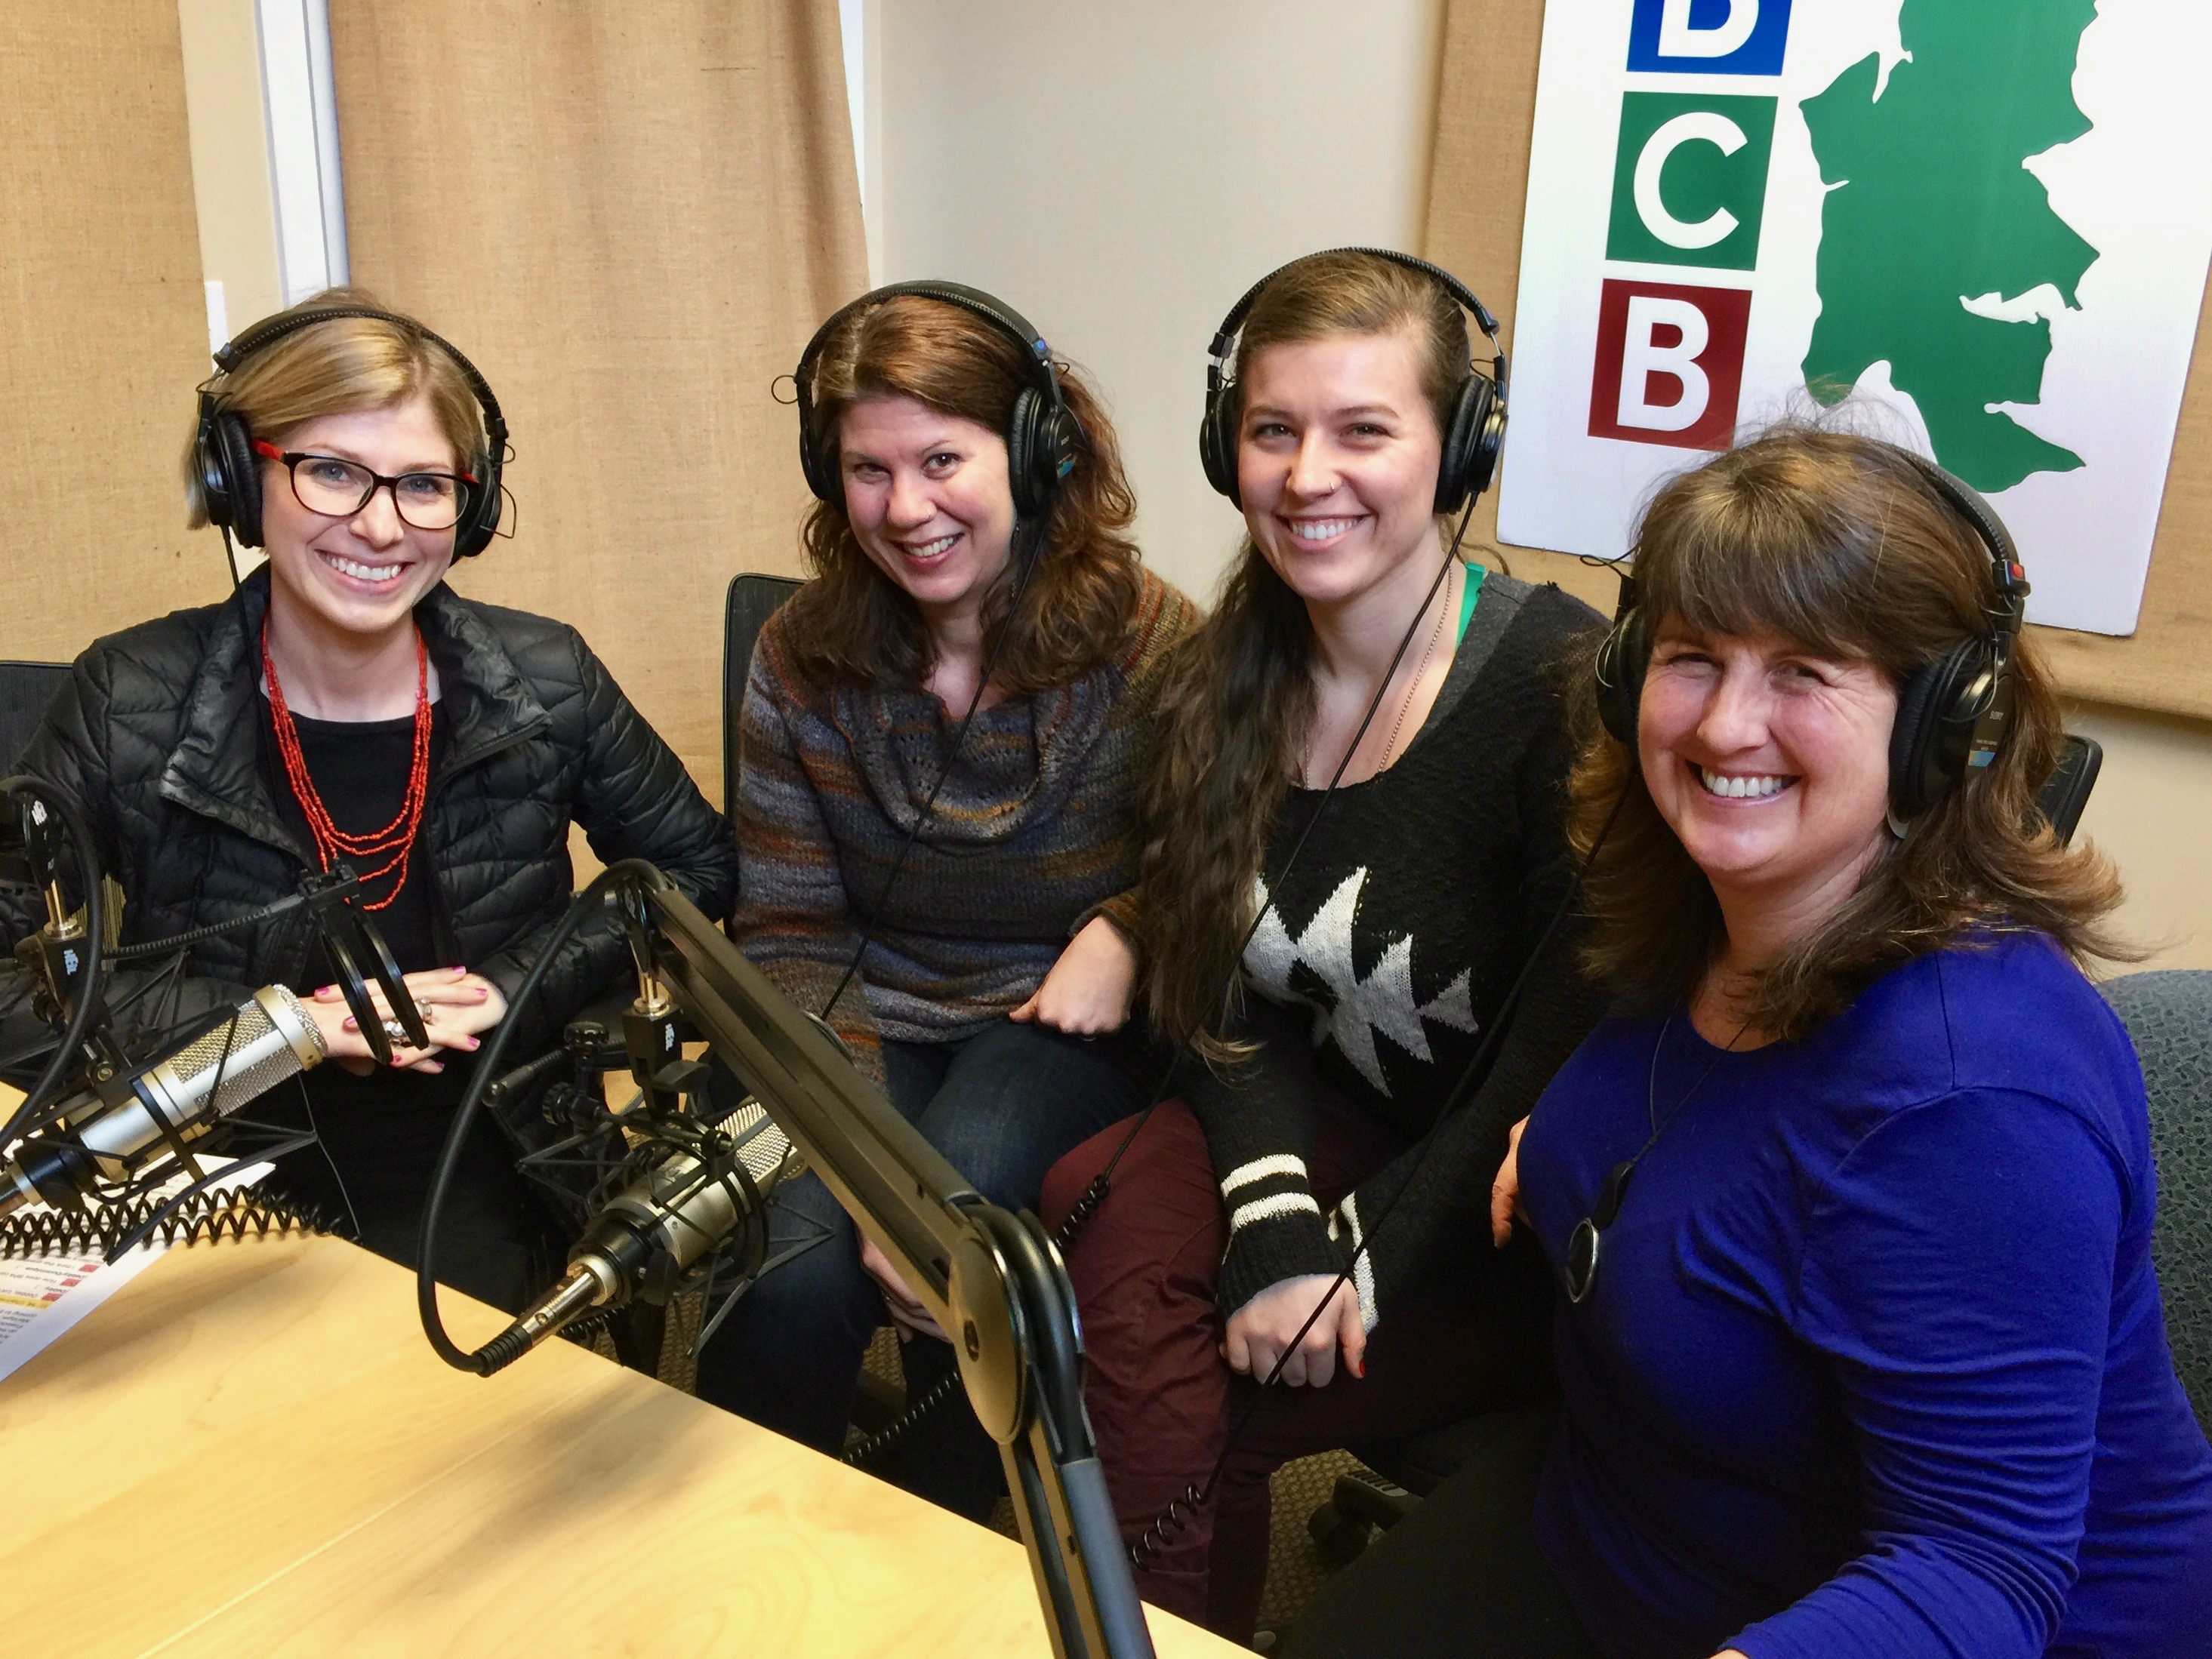 <i>Podcast: Arts and Artists on Bainbridge:</i> <br>Go behind the scenes with BPA's community theater directors